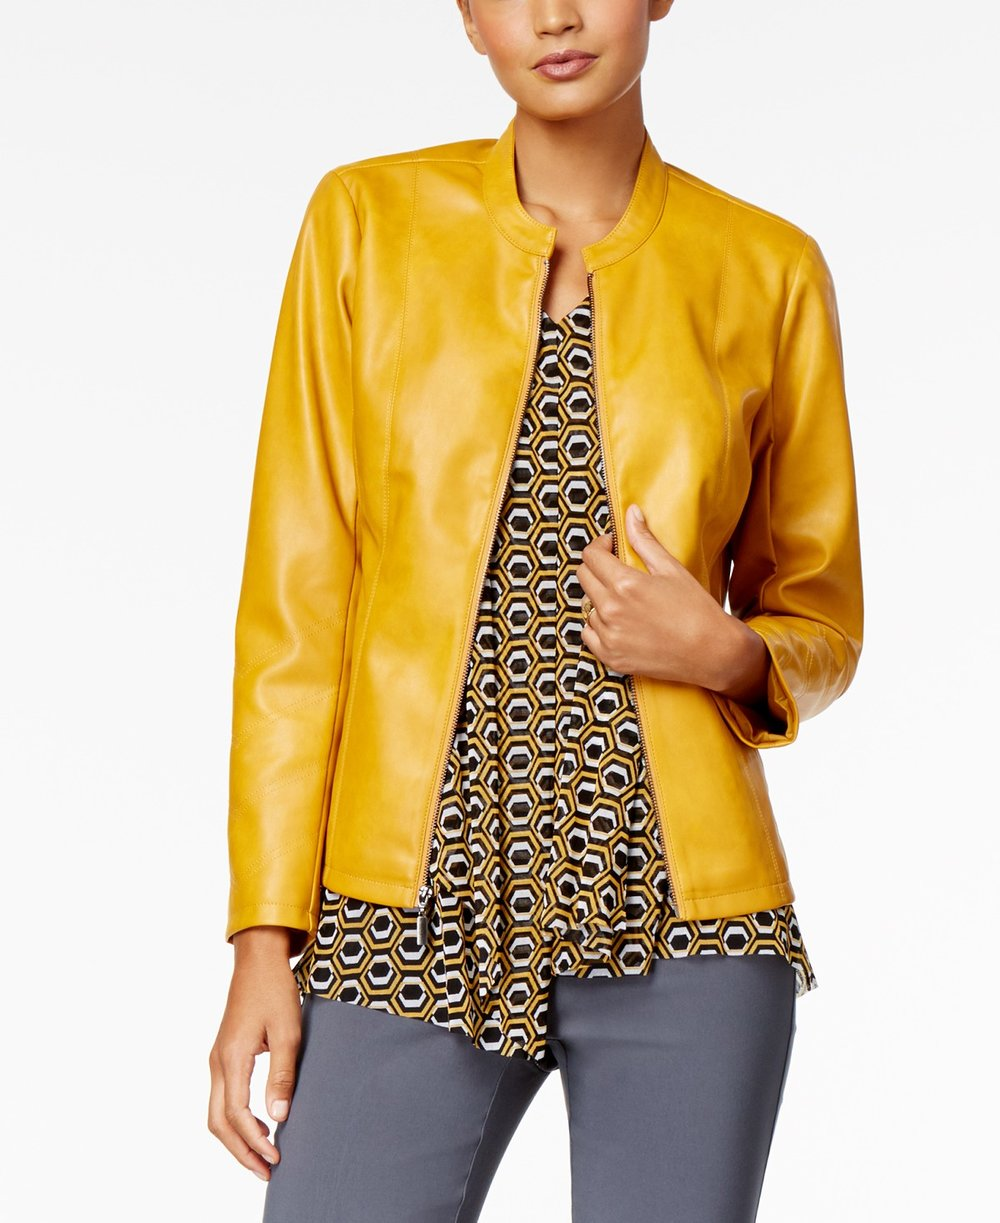 Alfani  Petite Faux-Leather Band-Collar Jacket.Macy's. Was: $99. Now: $54.